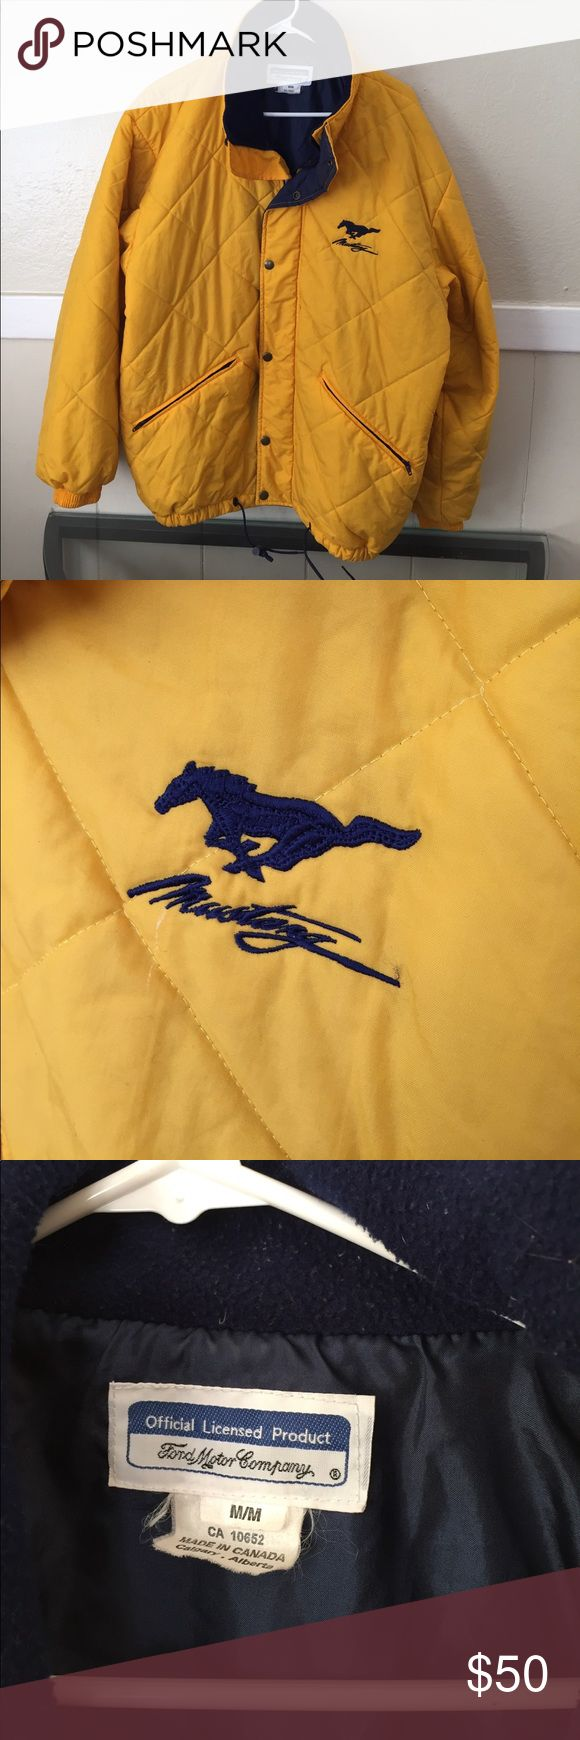 Ford Mustang jacket Ford Mustang jacket yellow and blue Ford motor company Jackets & Coats